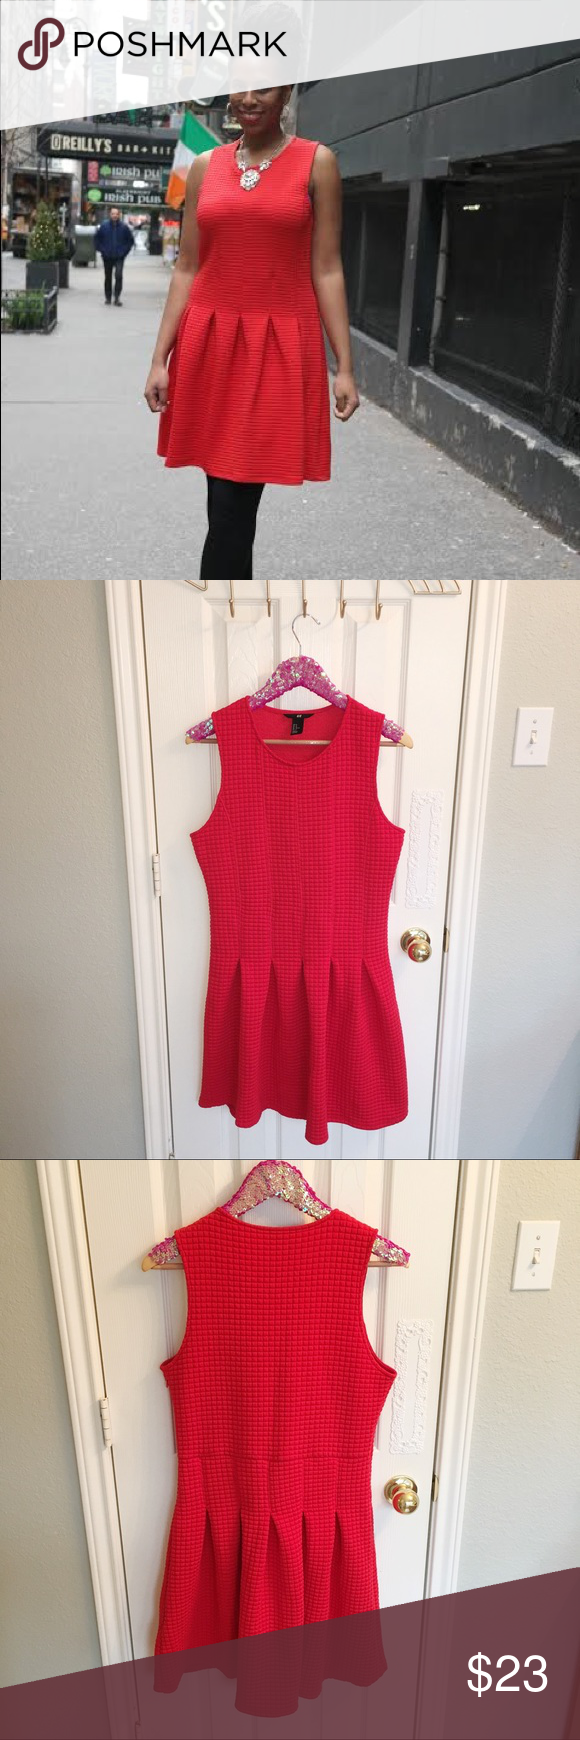 H&m pink pleated dress  HuM Red Quilted Pleated Skater Dress Size M  Minis